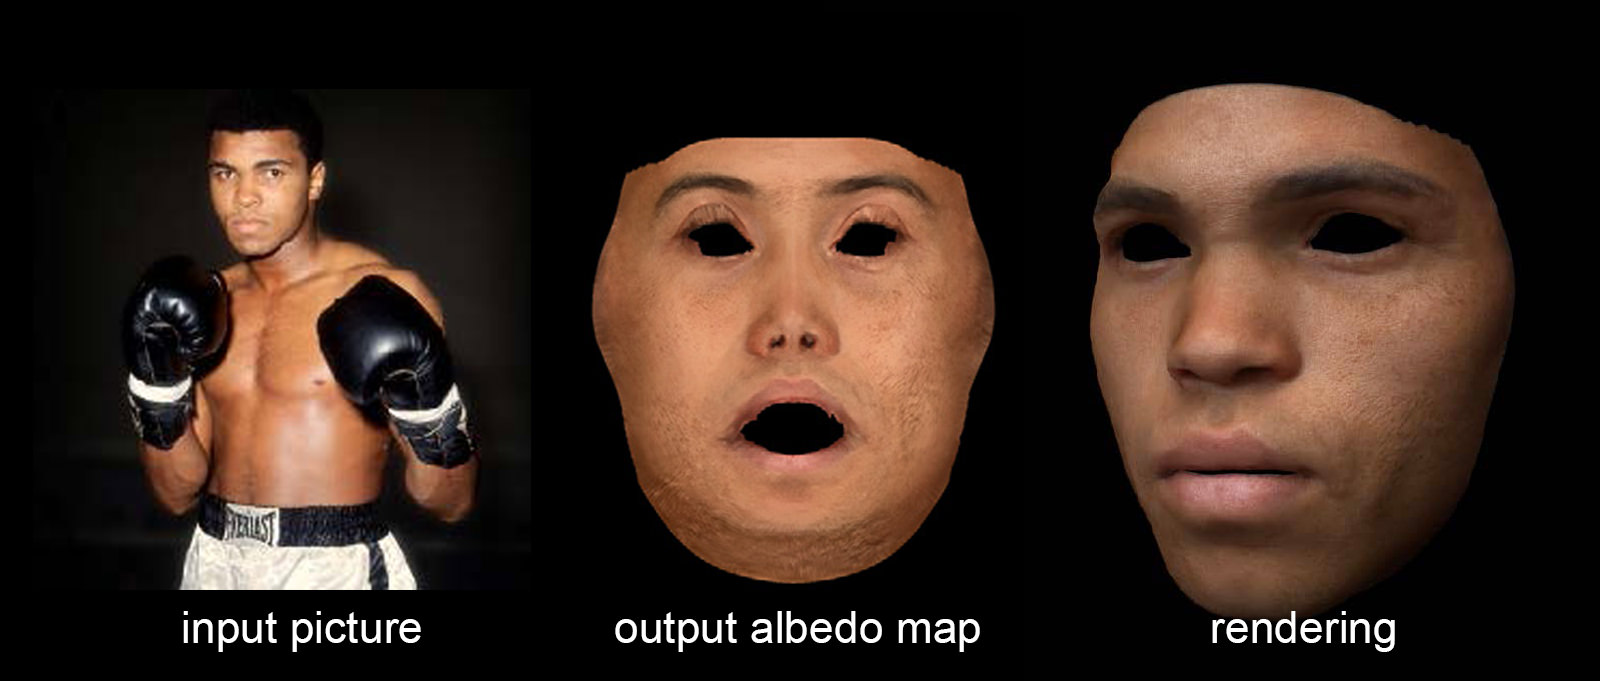 3d-face-models-deep-neural-networks-2